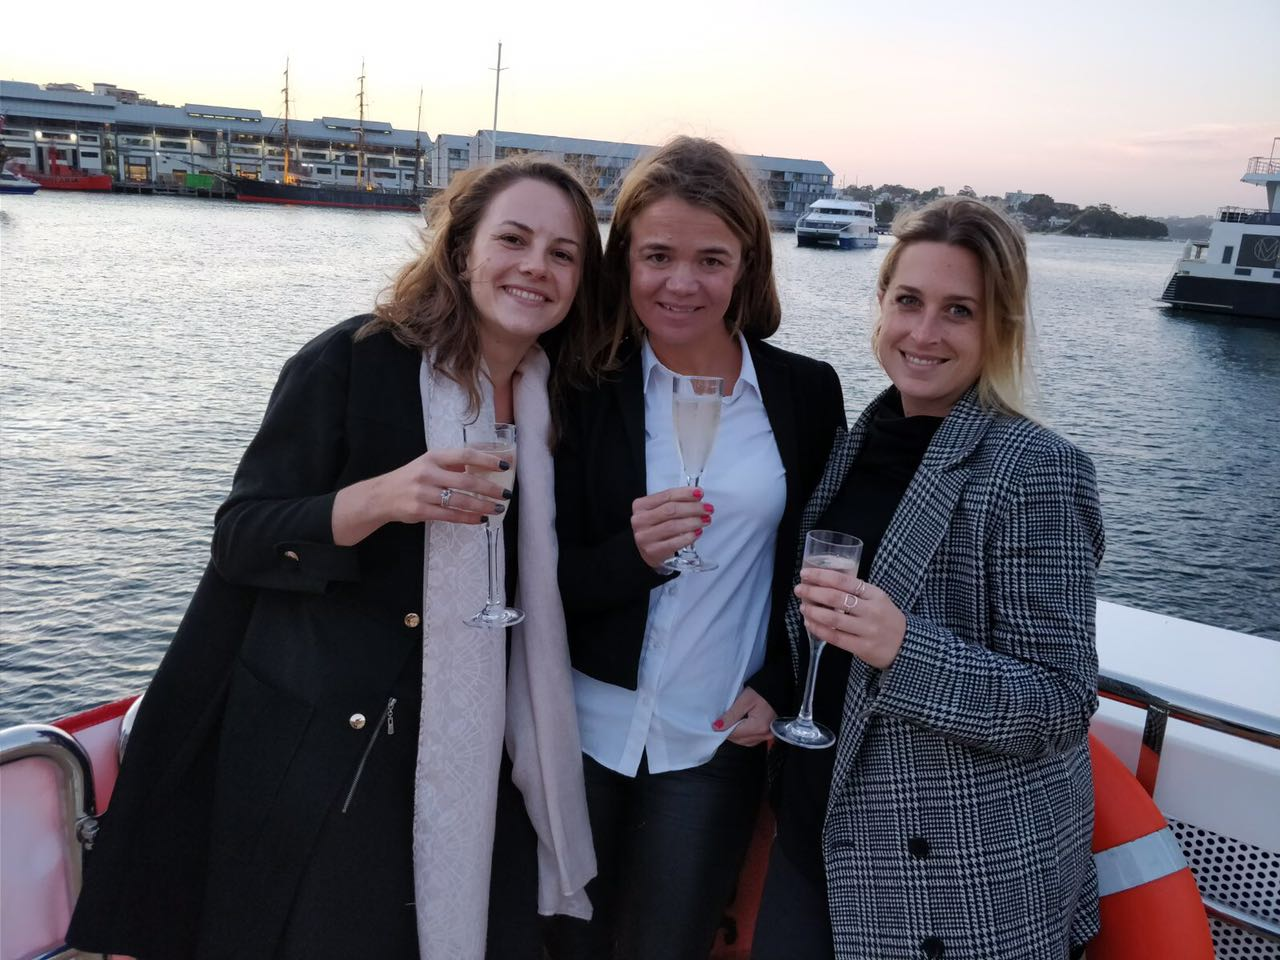 Julia, Tilly and Stephanie celebrating success! From left to right: Tilly, Julia, Stephanie.